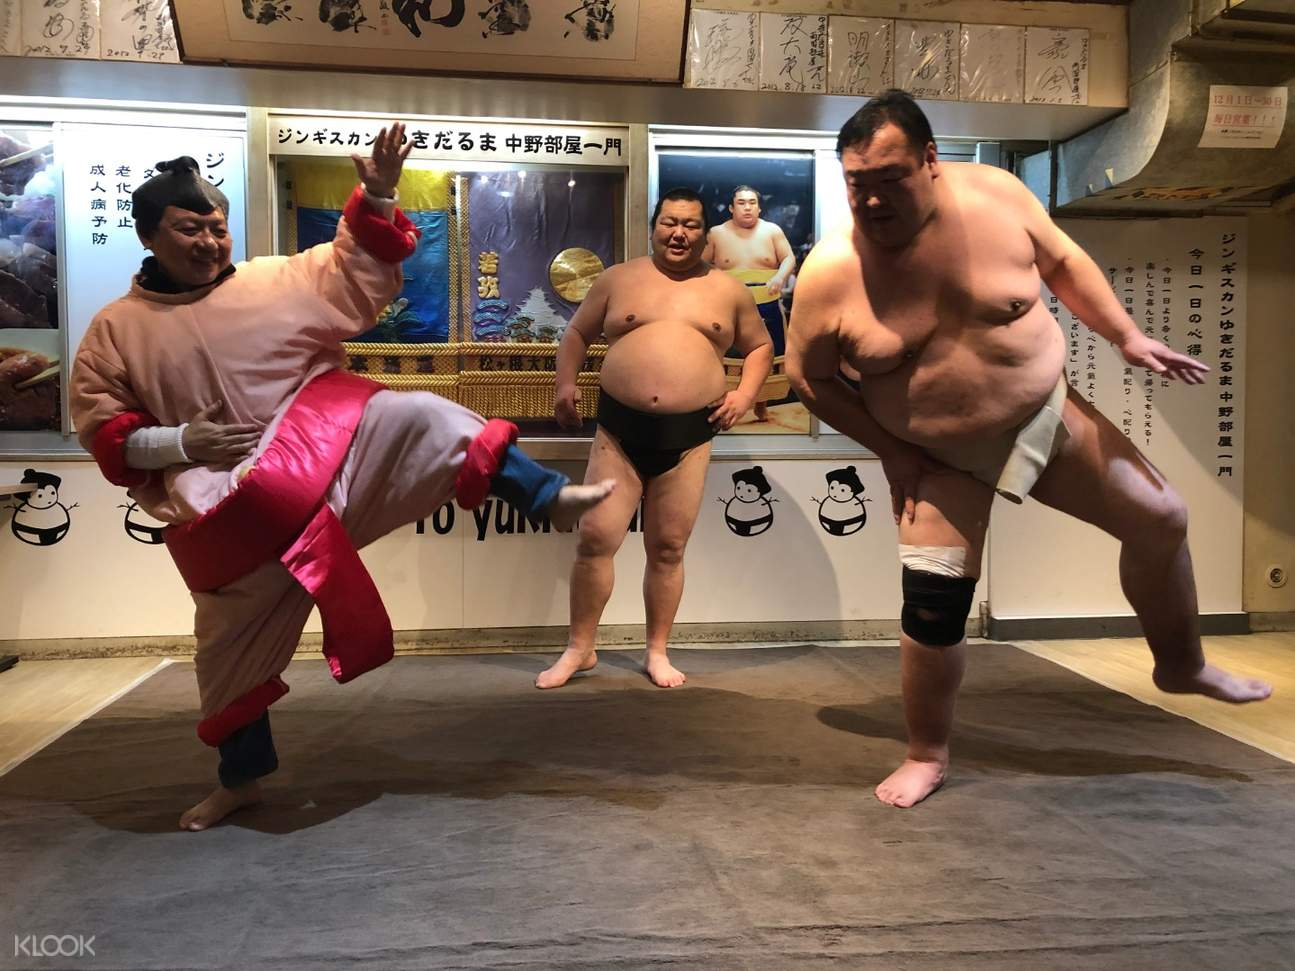 tourists doing sumo poses